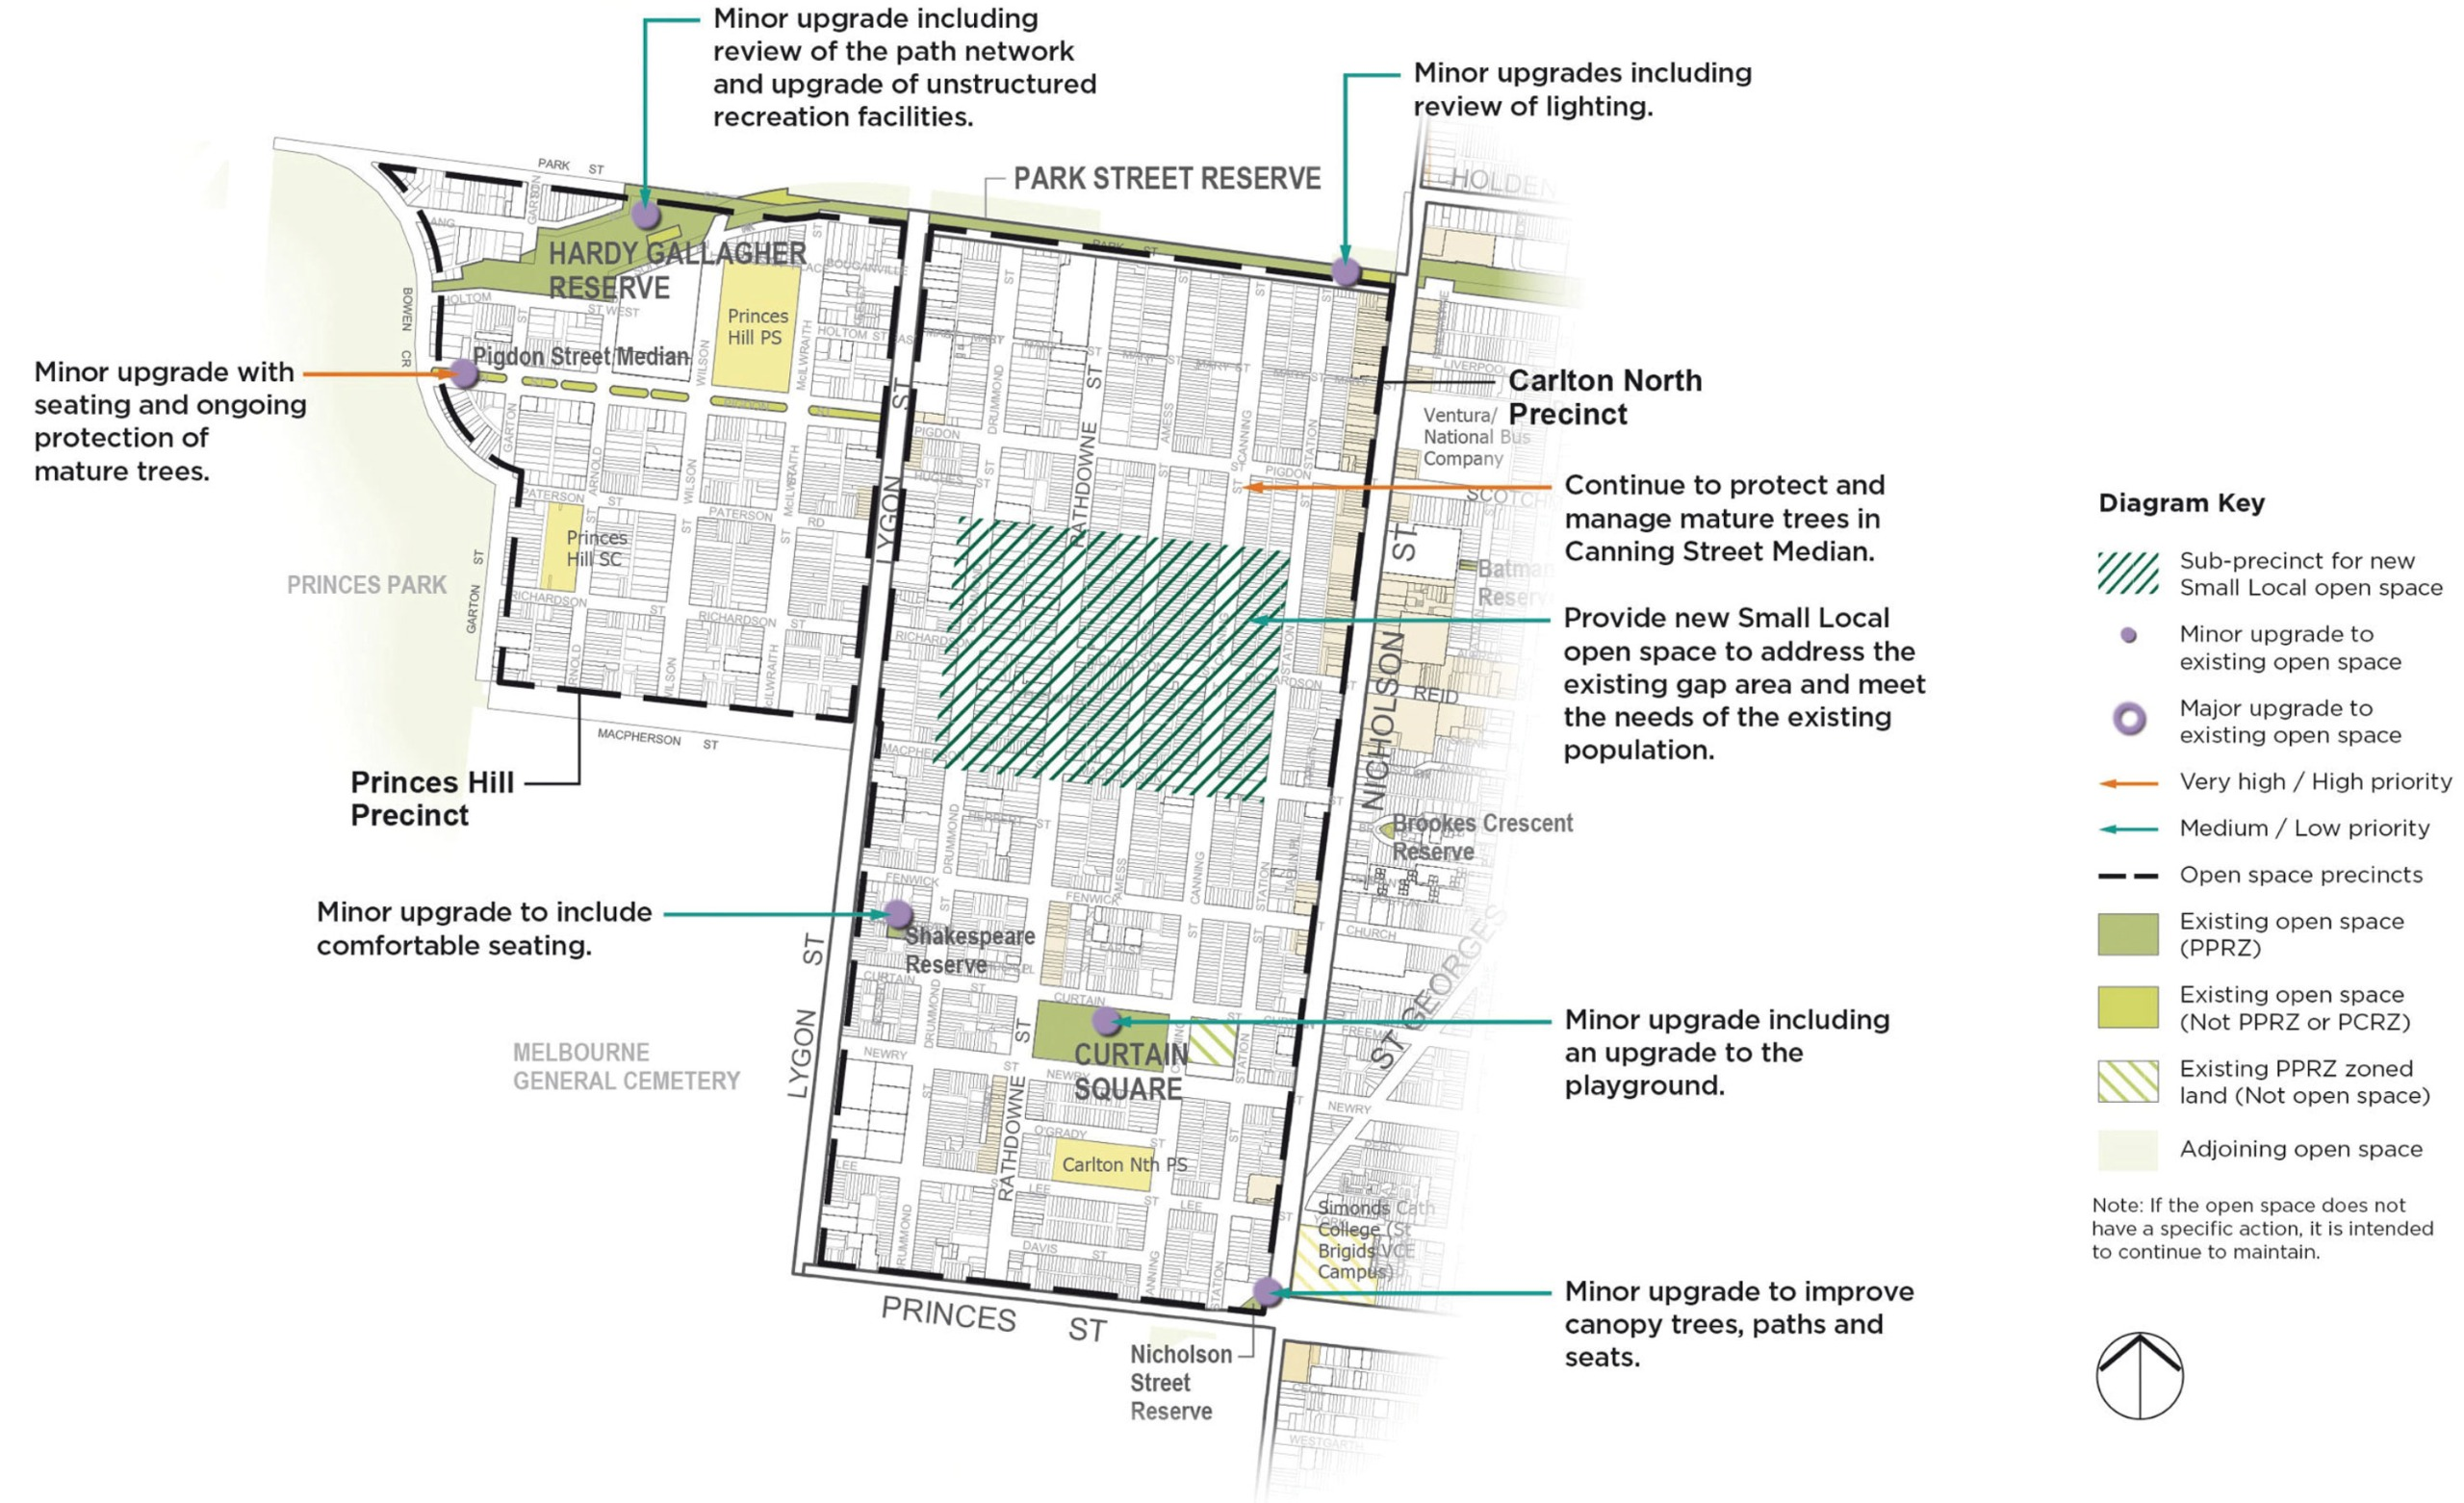 Recommendations for the Carlton North - Princess Hill precinct